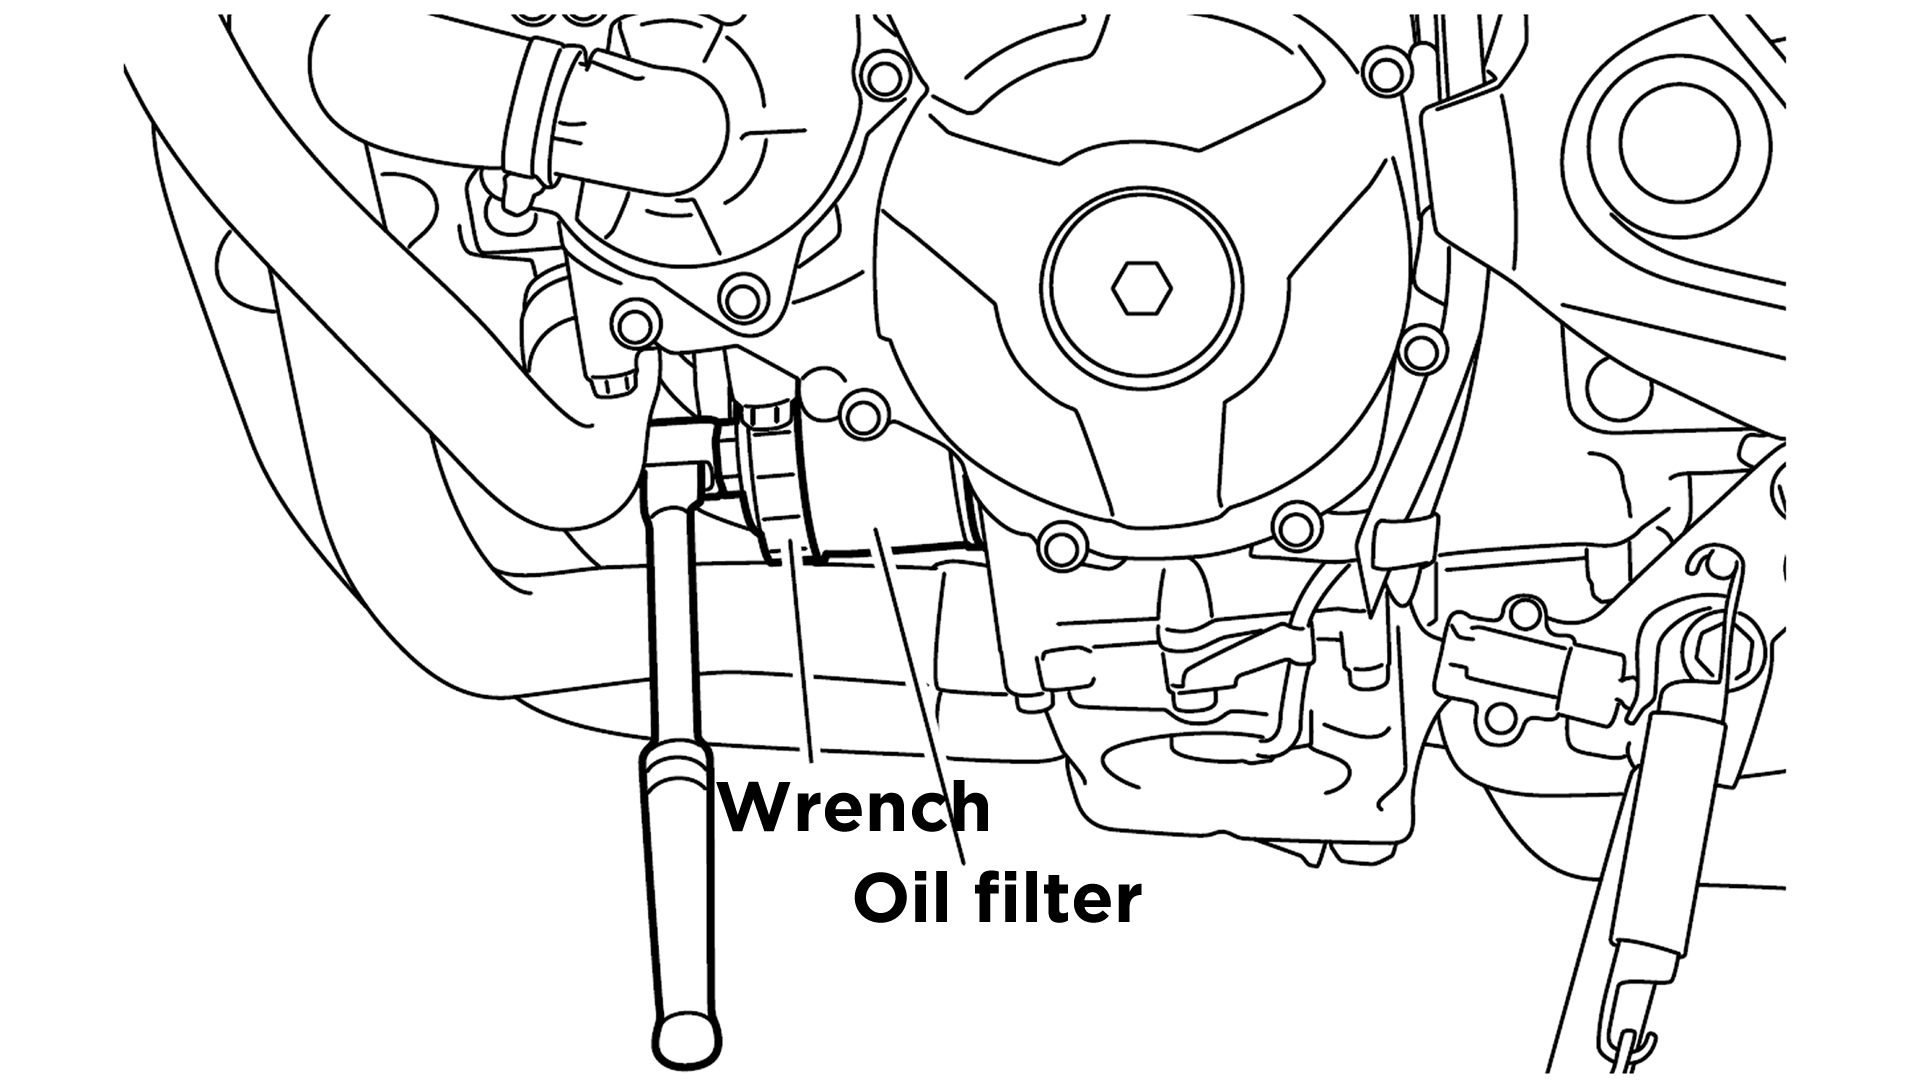 Step 3) Remove the oil filter